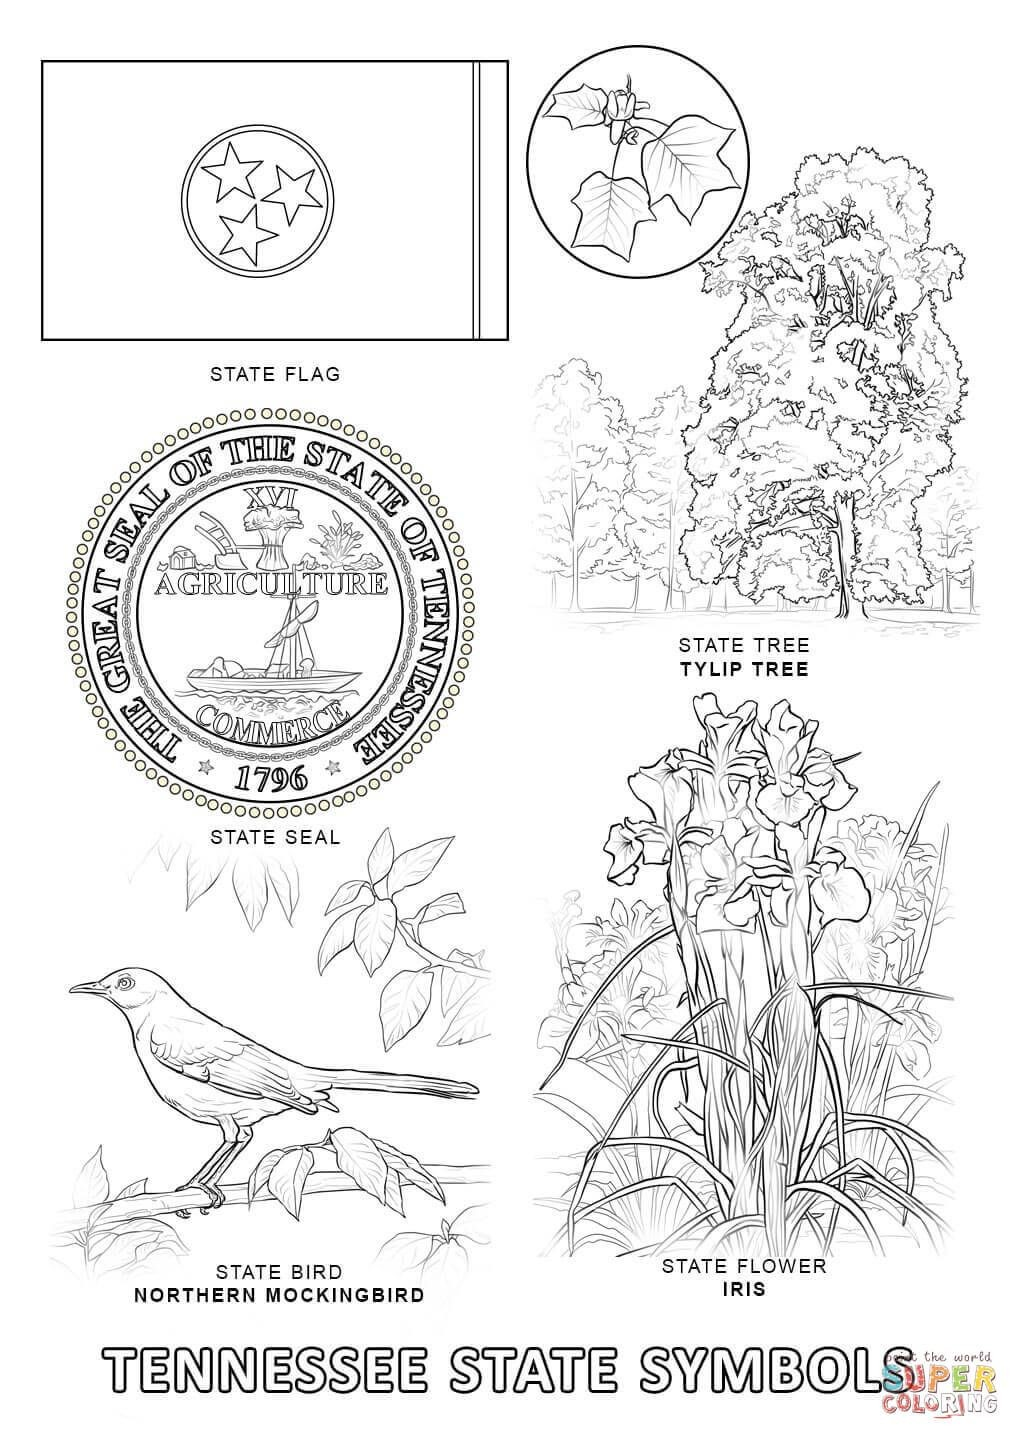 Texas Symbols Coloring Pages Elegant Tennessee State Flag Coloring